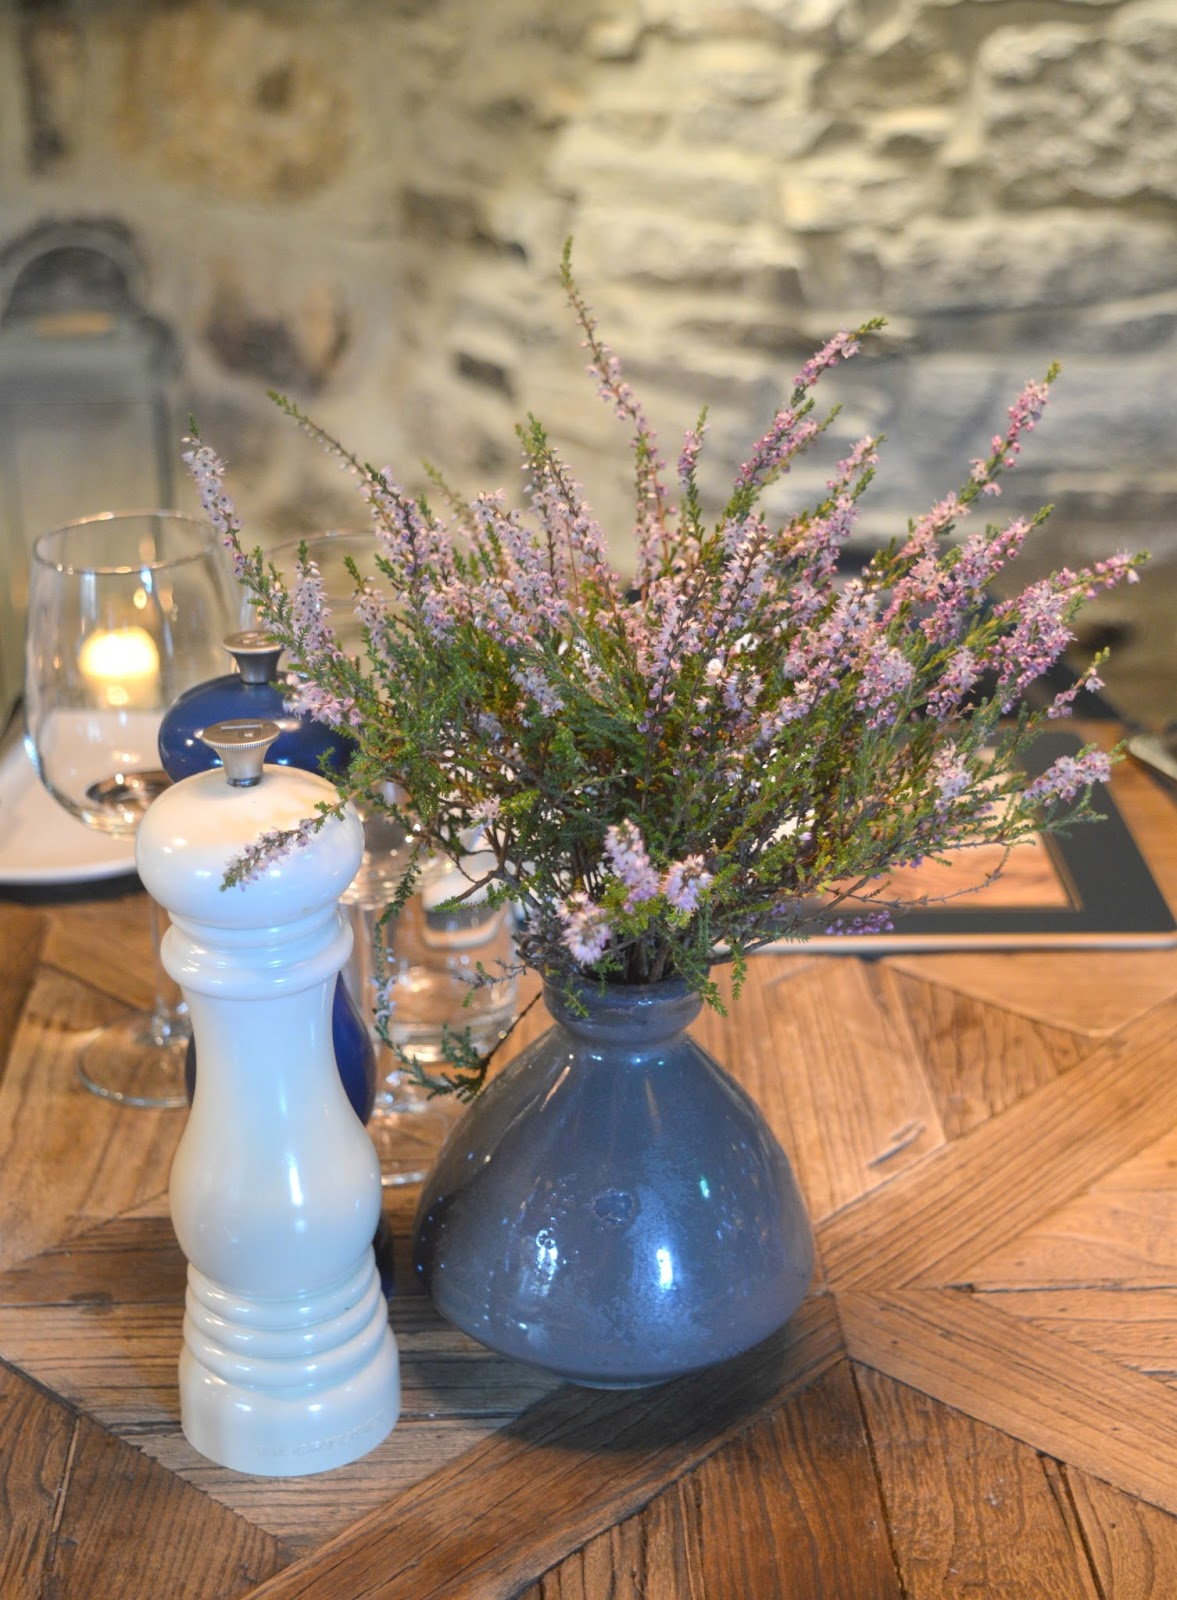 The Crewe Supper Club at the Gatehouse, Lord Crewe Arms, Blanchland - Wild Heather